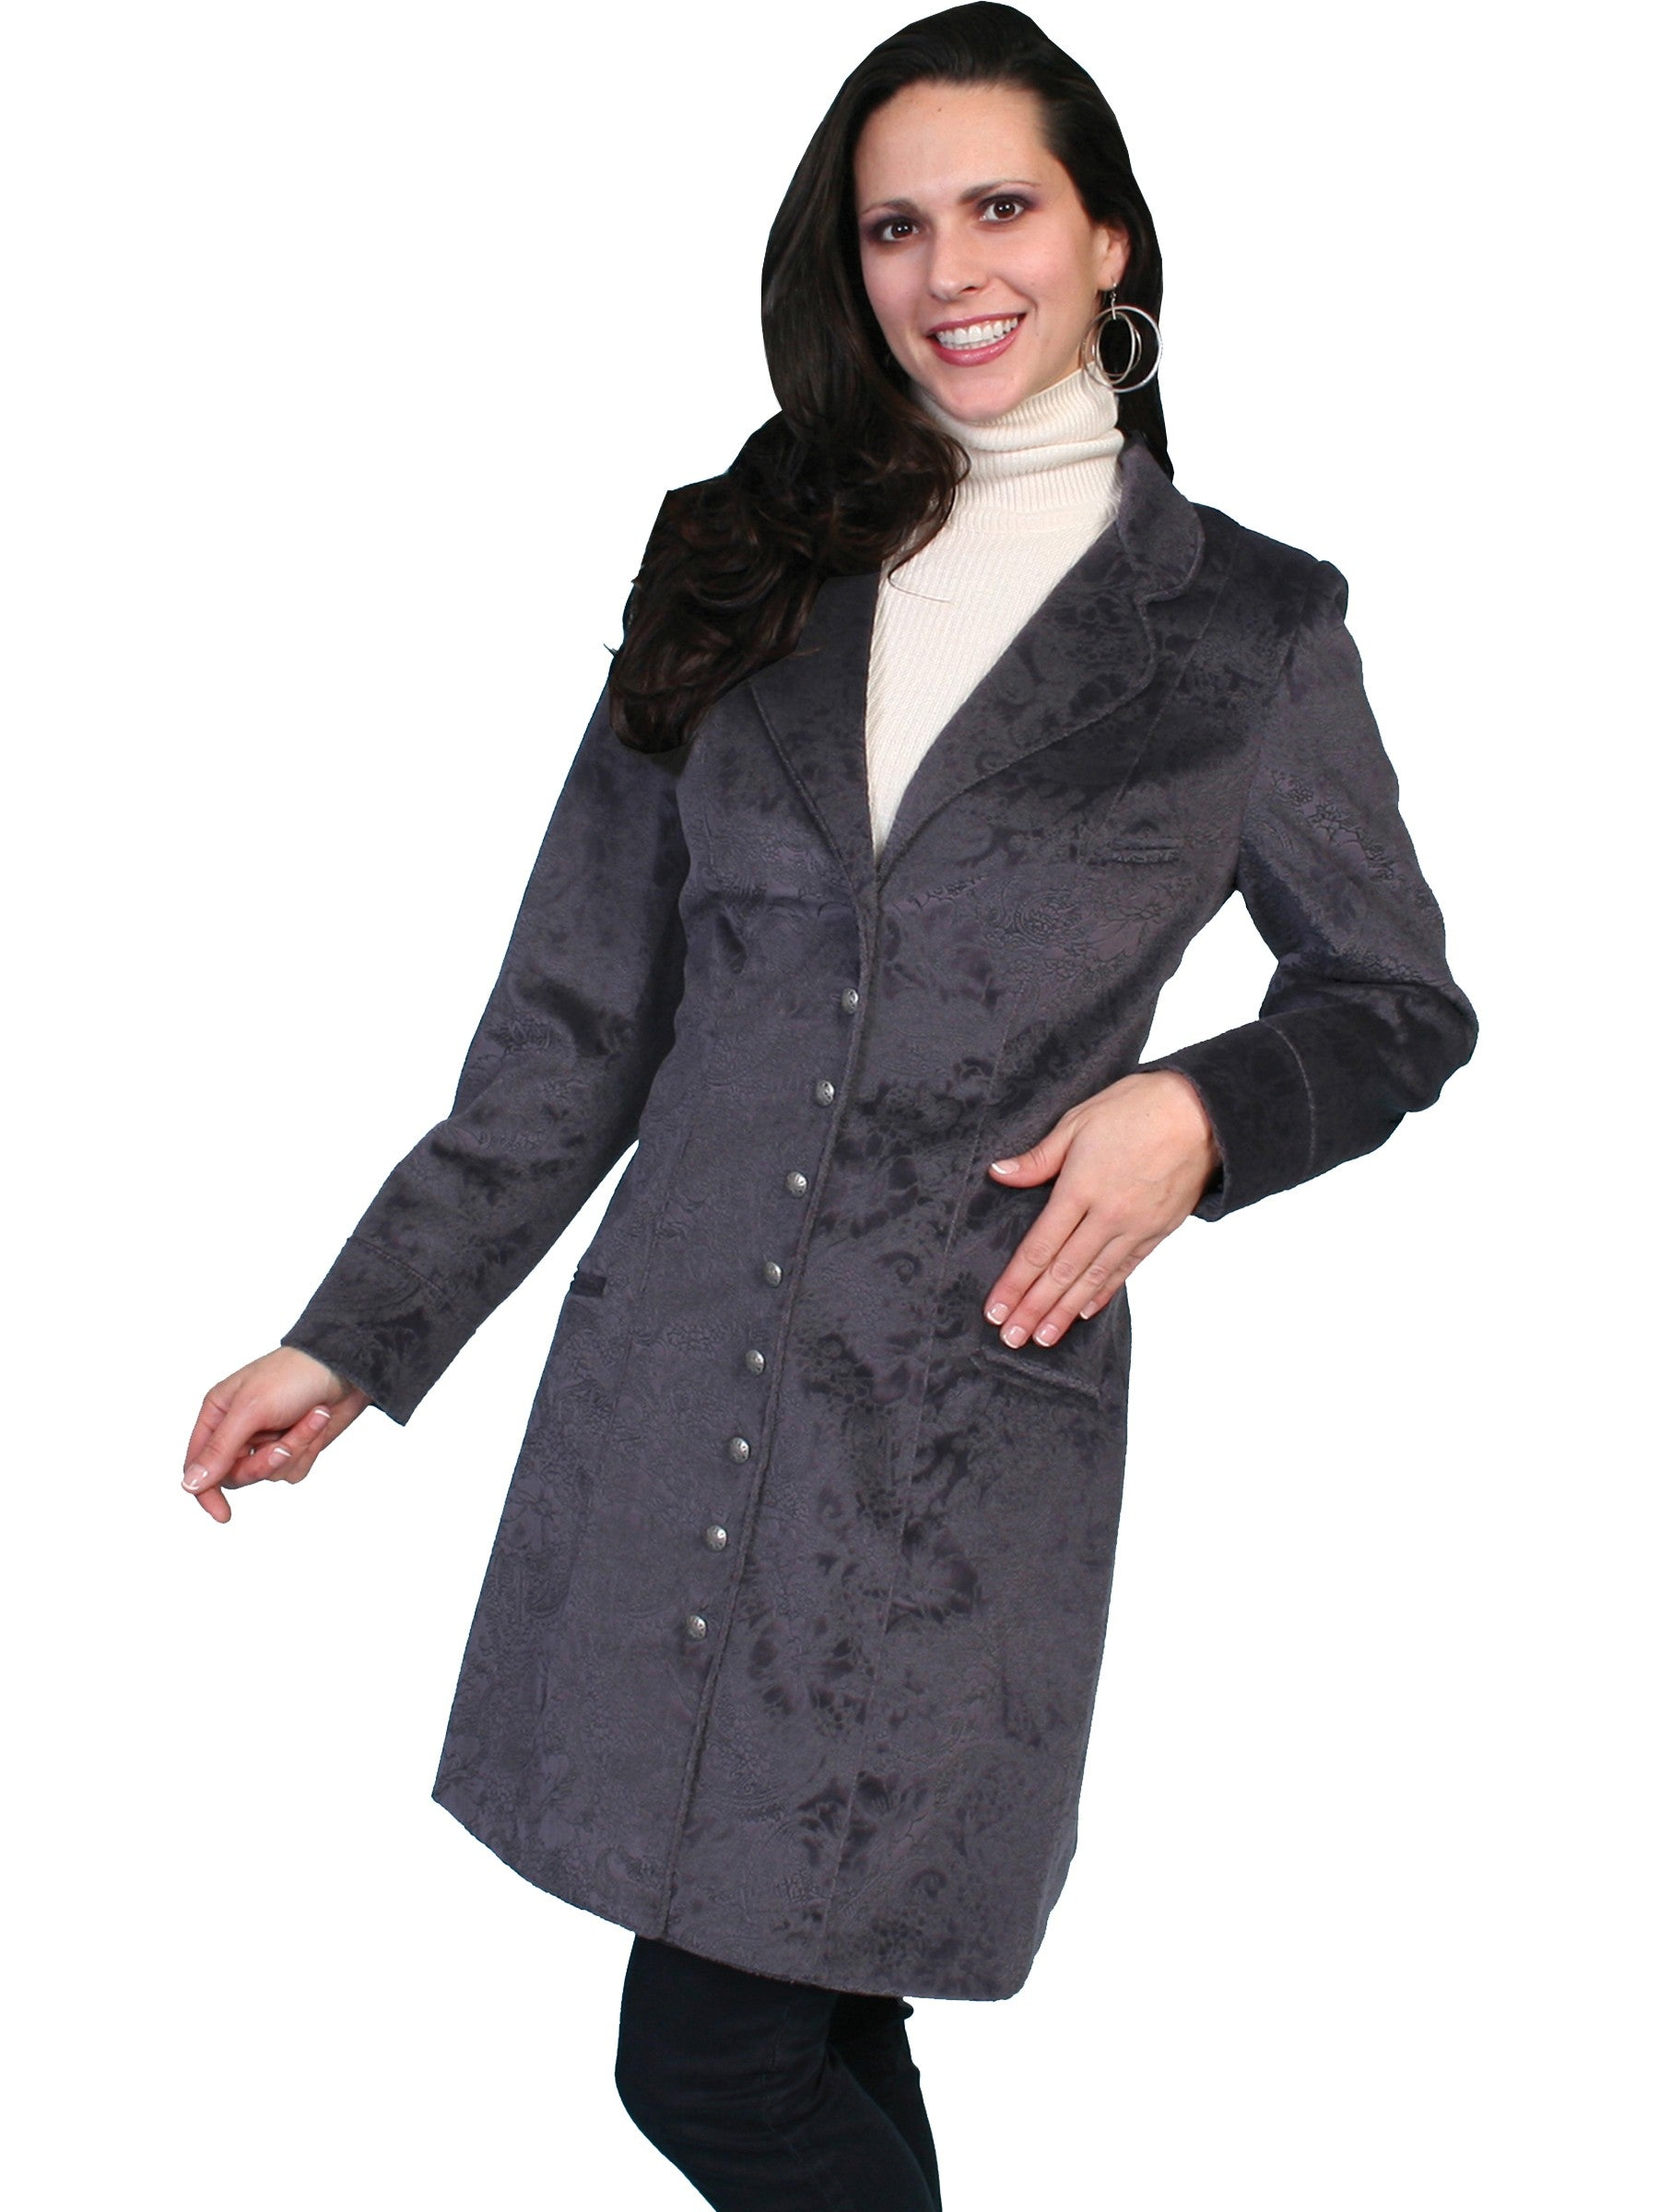 Victorian Clothing, Costumes & 1800s Fashion Western Style Velvet Embossed Frock Coat in Plum $149.00 AT vintagedancer.com